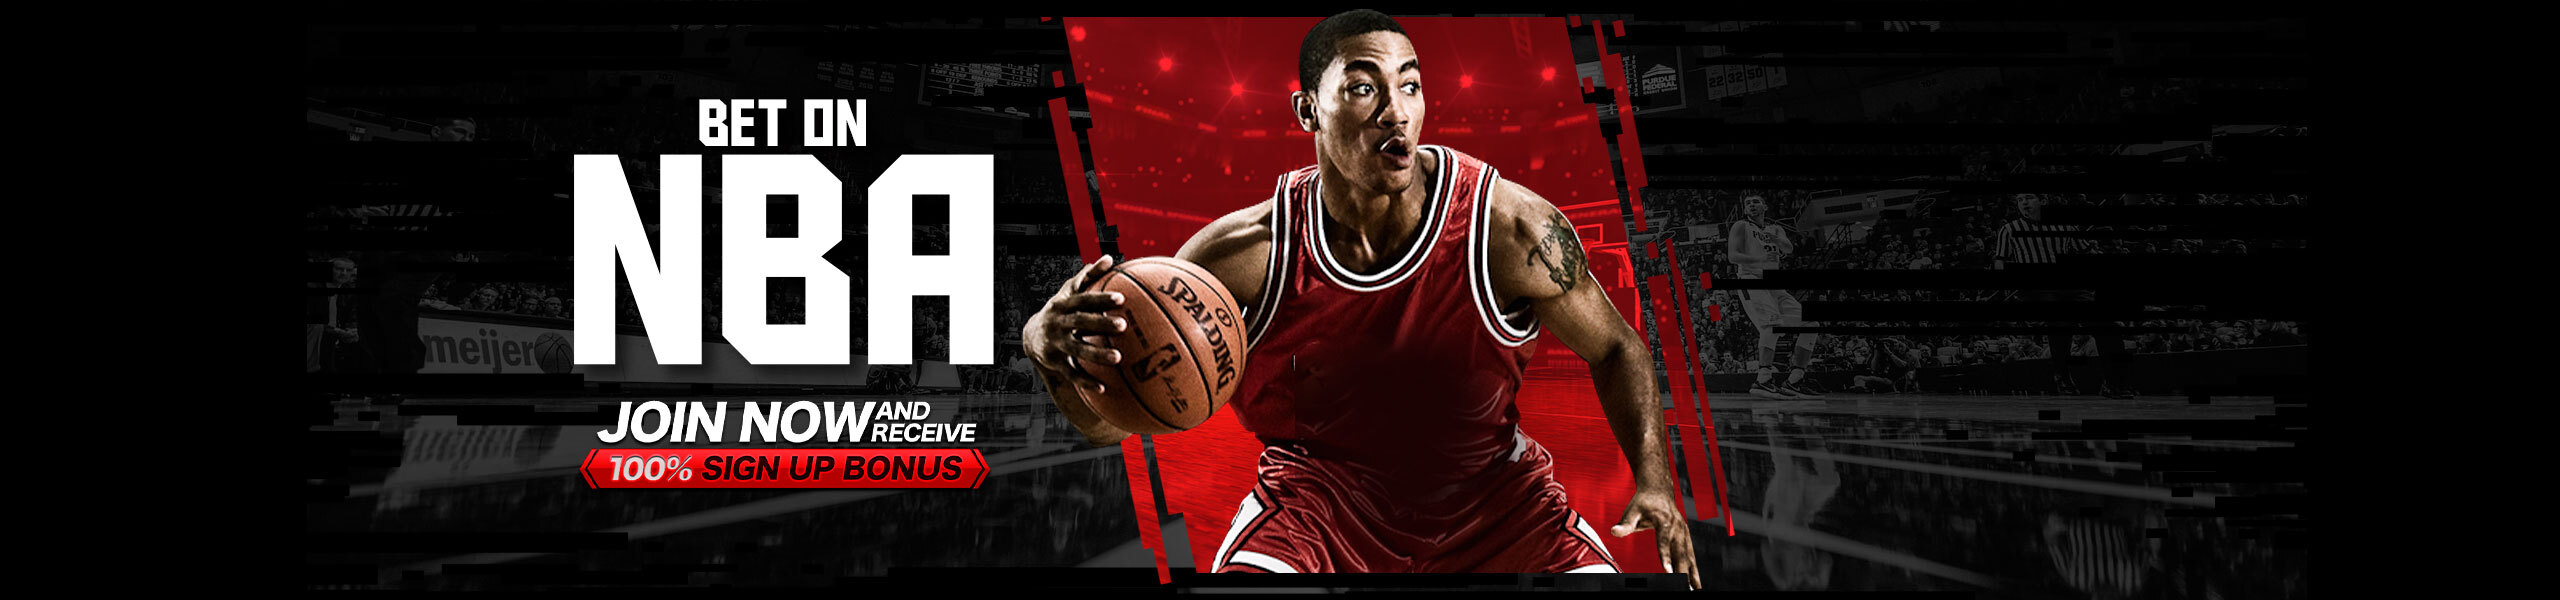 Bet on NBA 100% Bonus